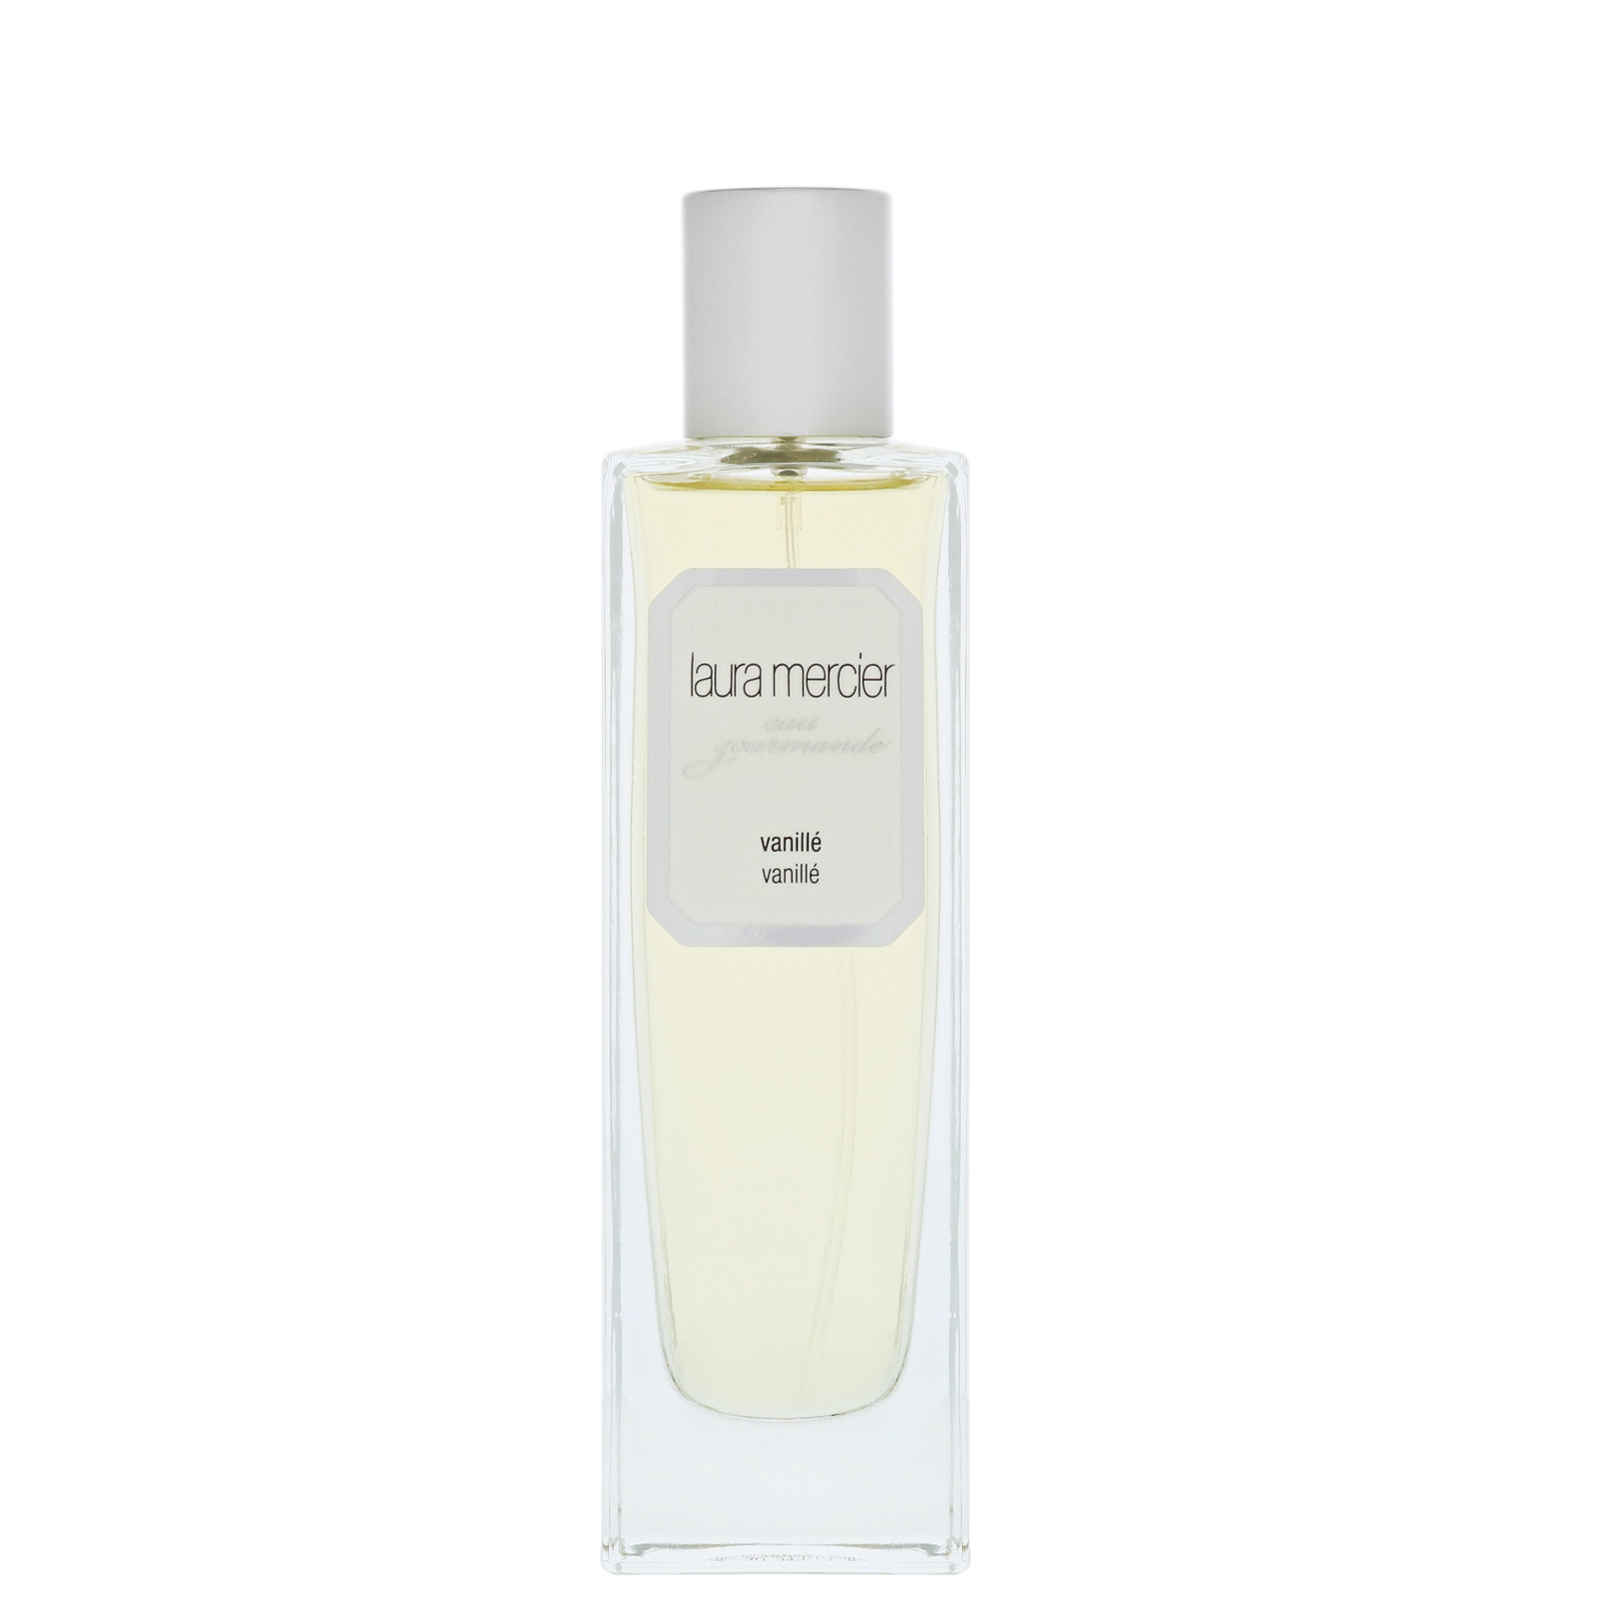 Laura Mercier Eau Gourmande Vanille Eau de Toilette Spray 50ml